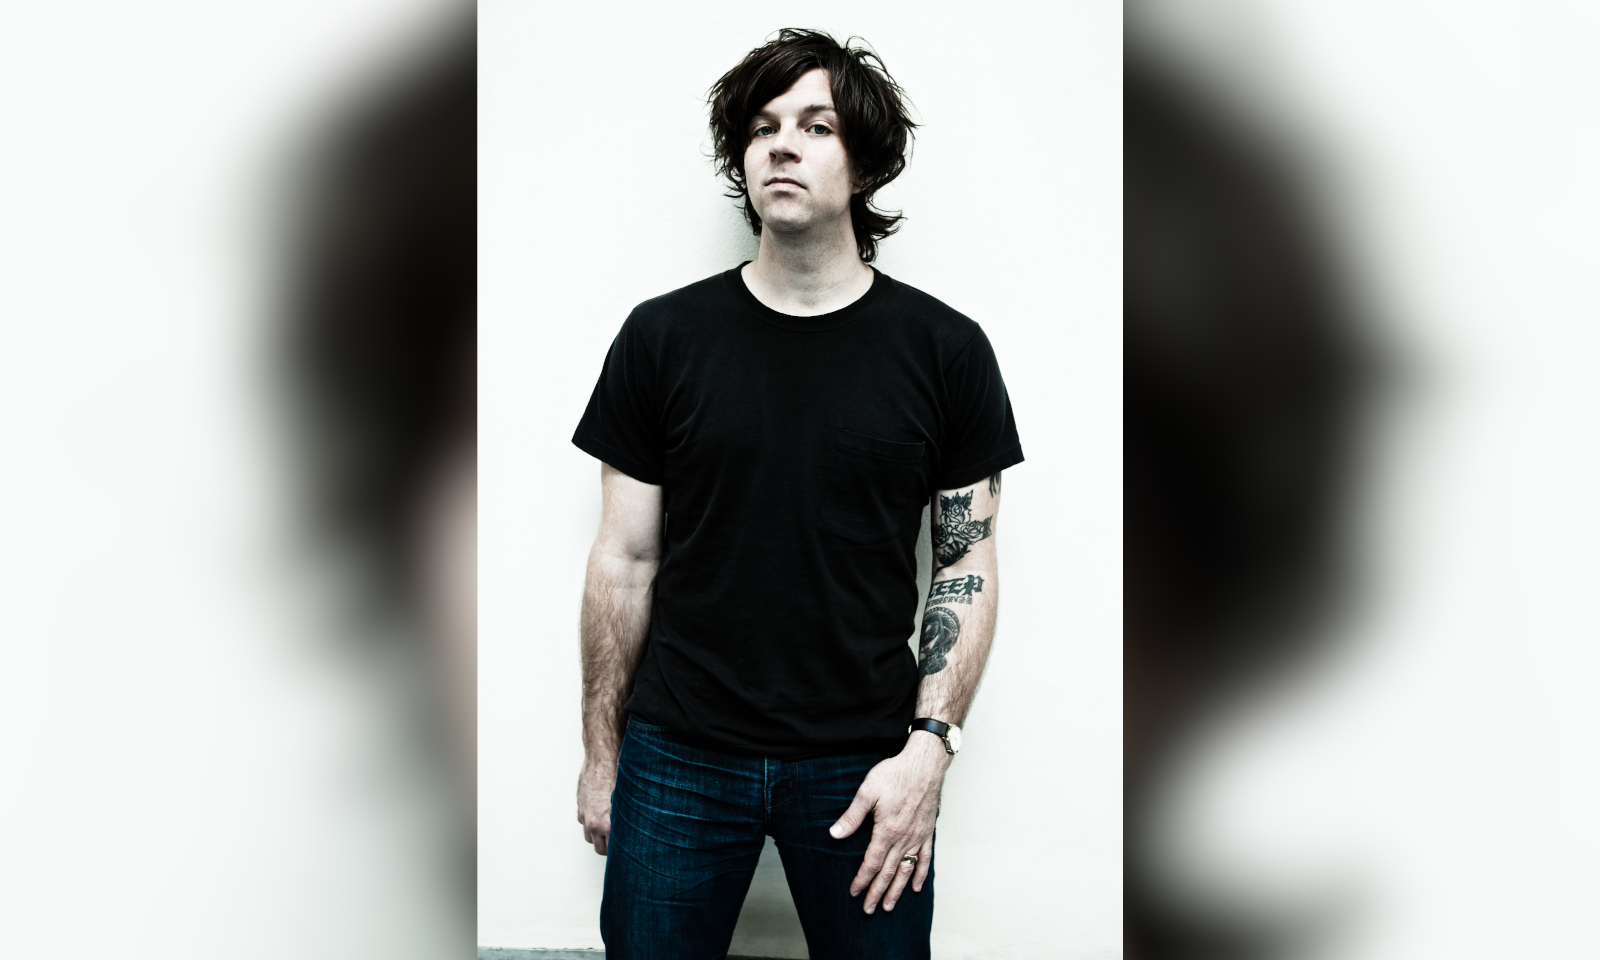 Ryan Adams Breaks Social Media Silence After Sexual Misconduct Allegations — unCrazed